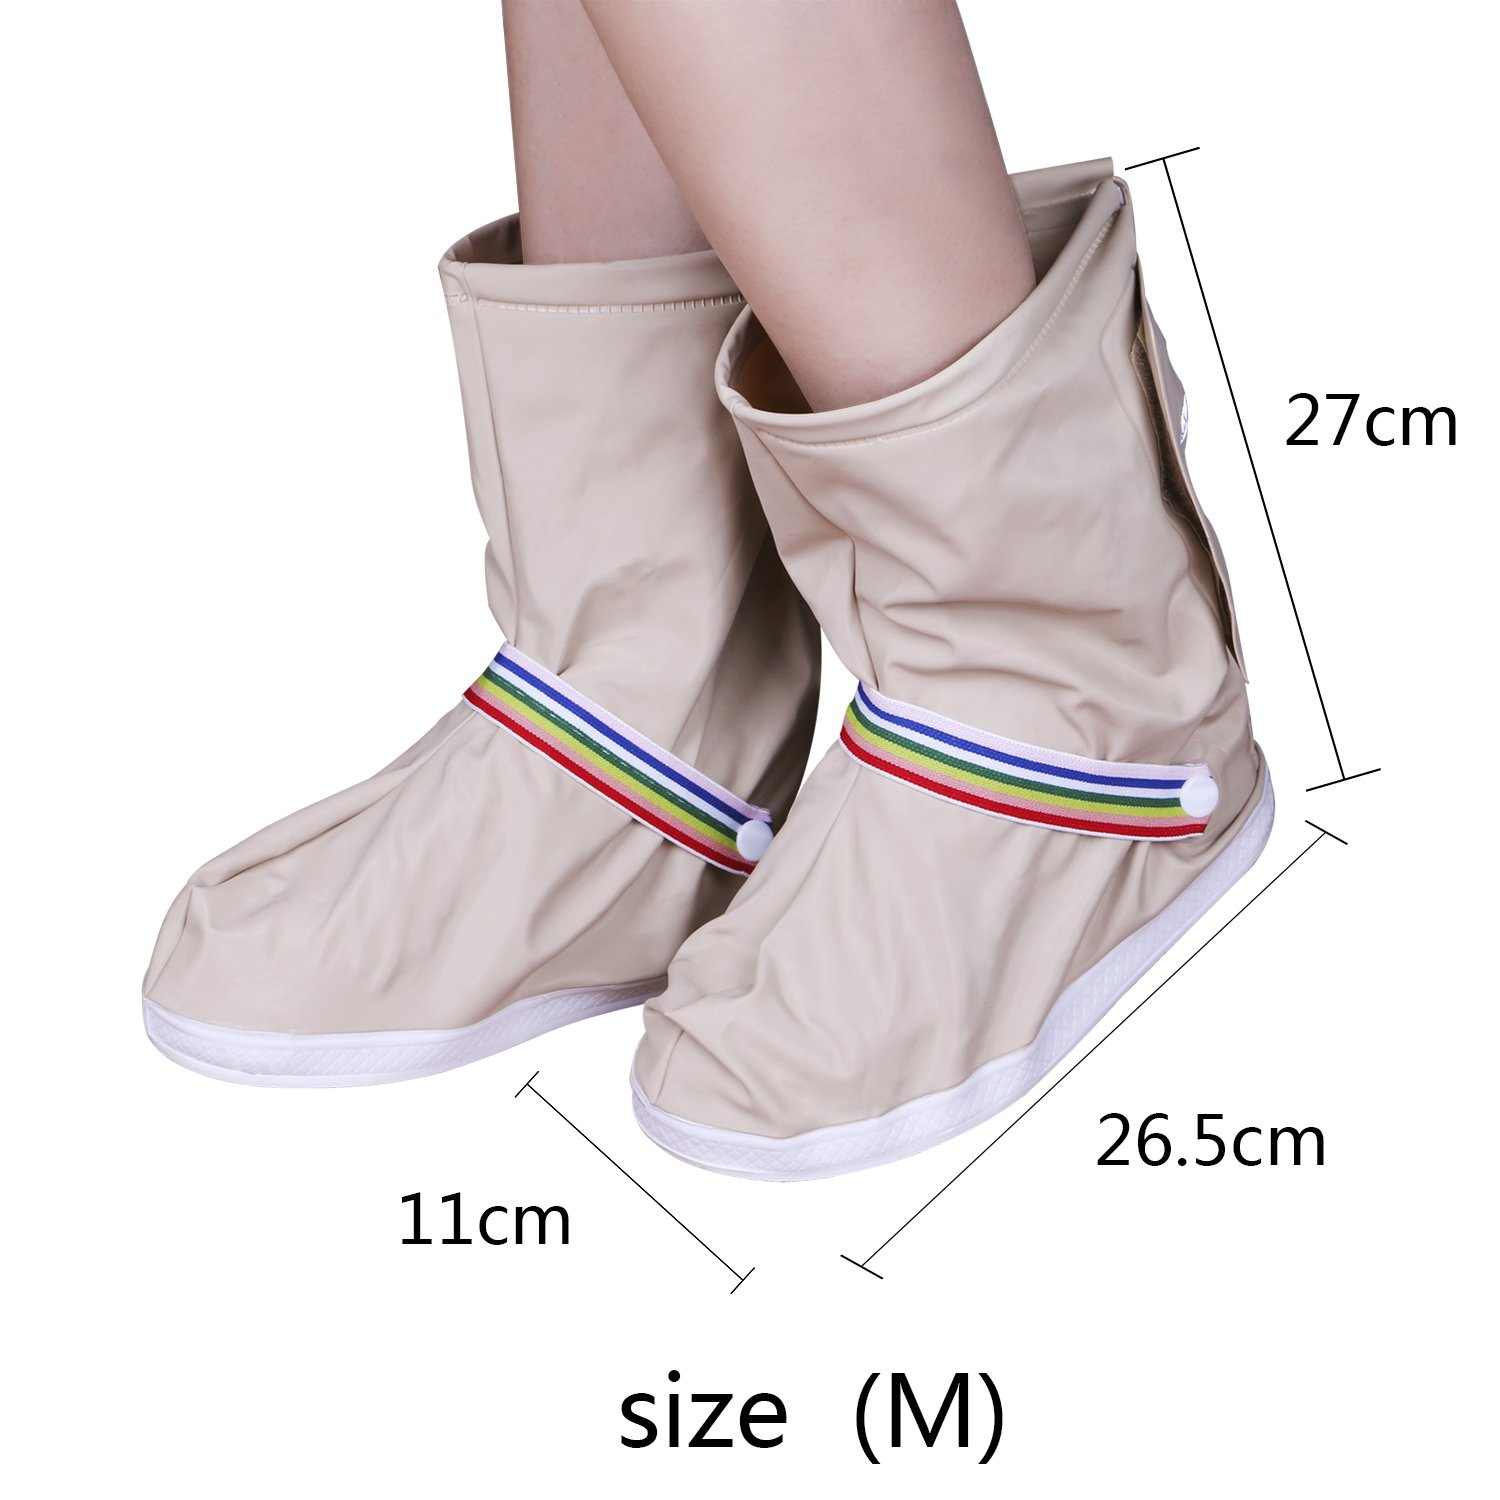 Rain Shoe cover, Rain Boot Waterproof with Velcro and Adjustable Tied Rope Defend for Rain, Snow, Mud